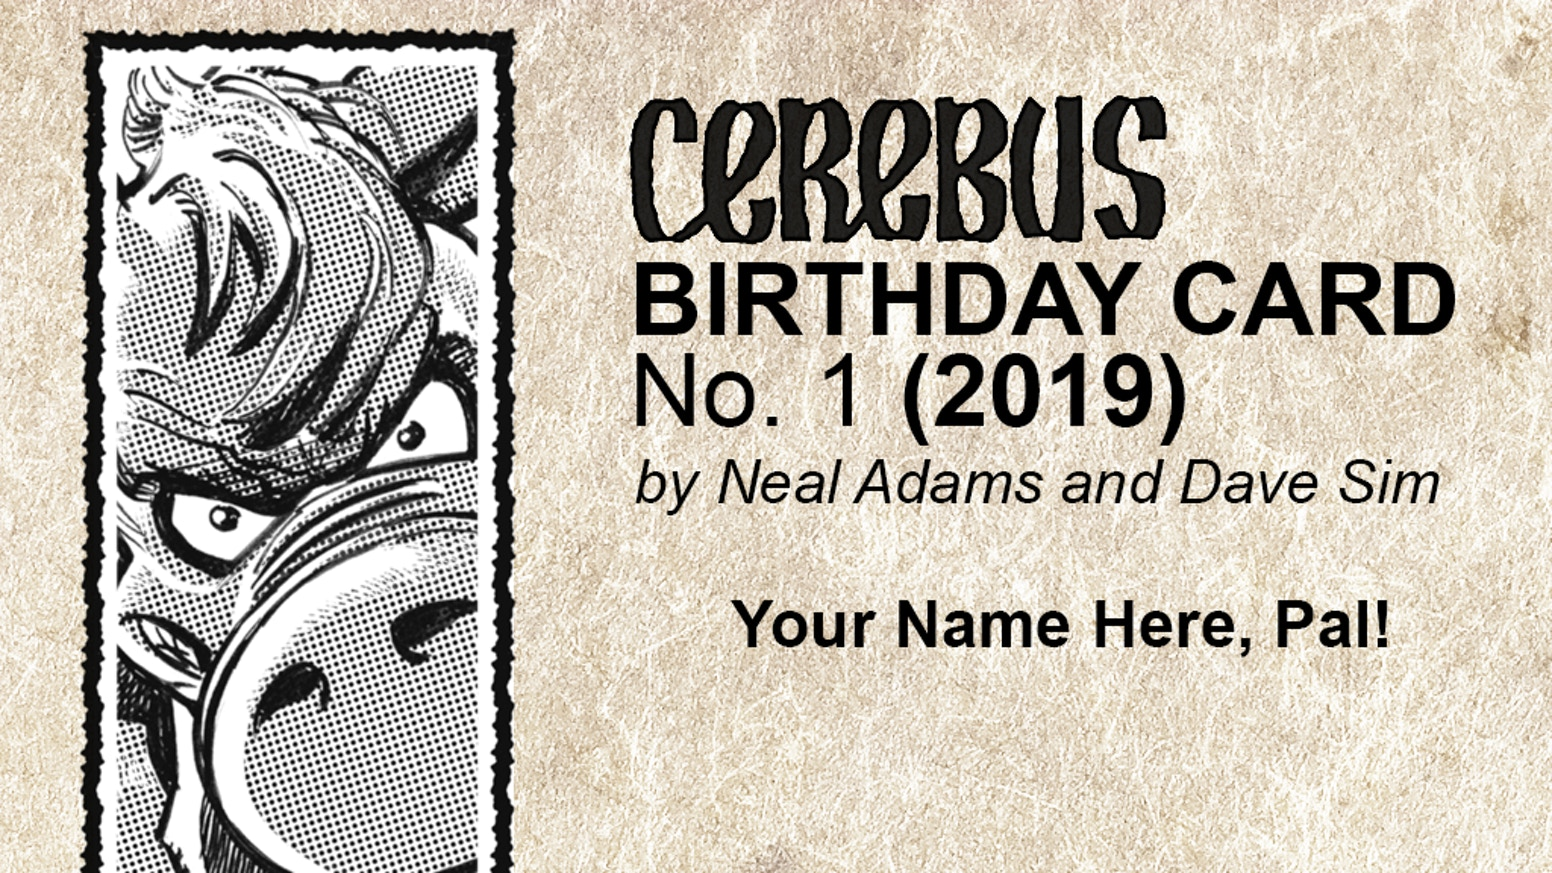 Cerebus Birthday Cards Designed And Drawn By Neal Adams Dave Sim With Custom